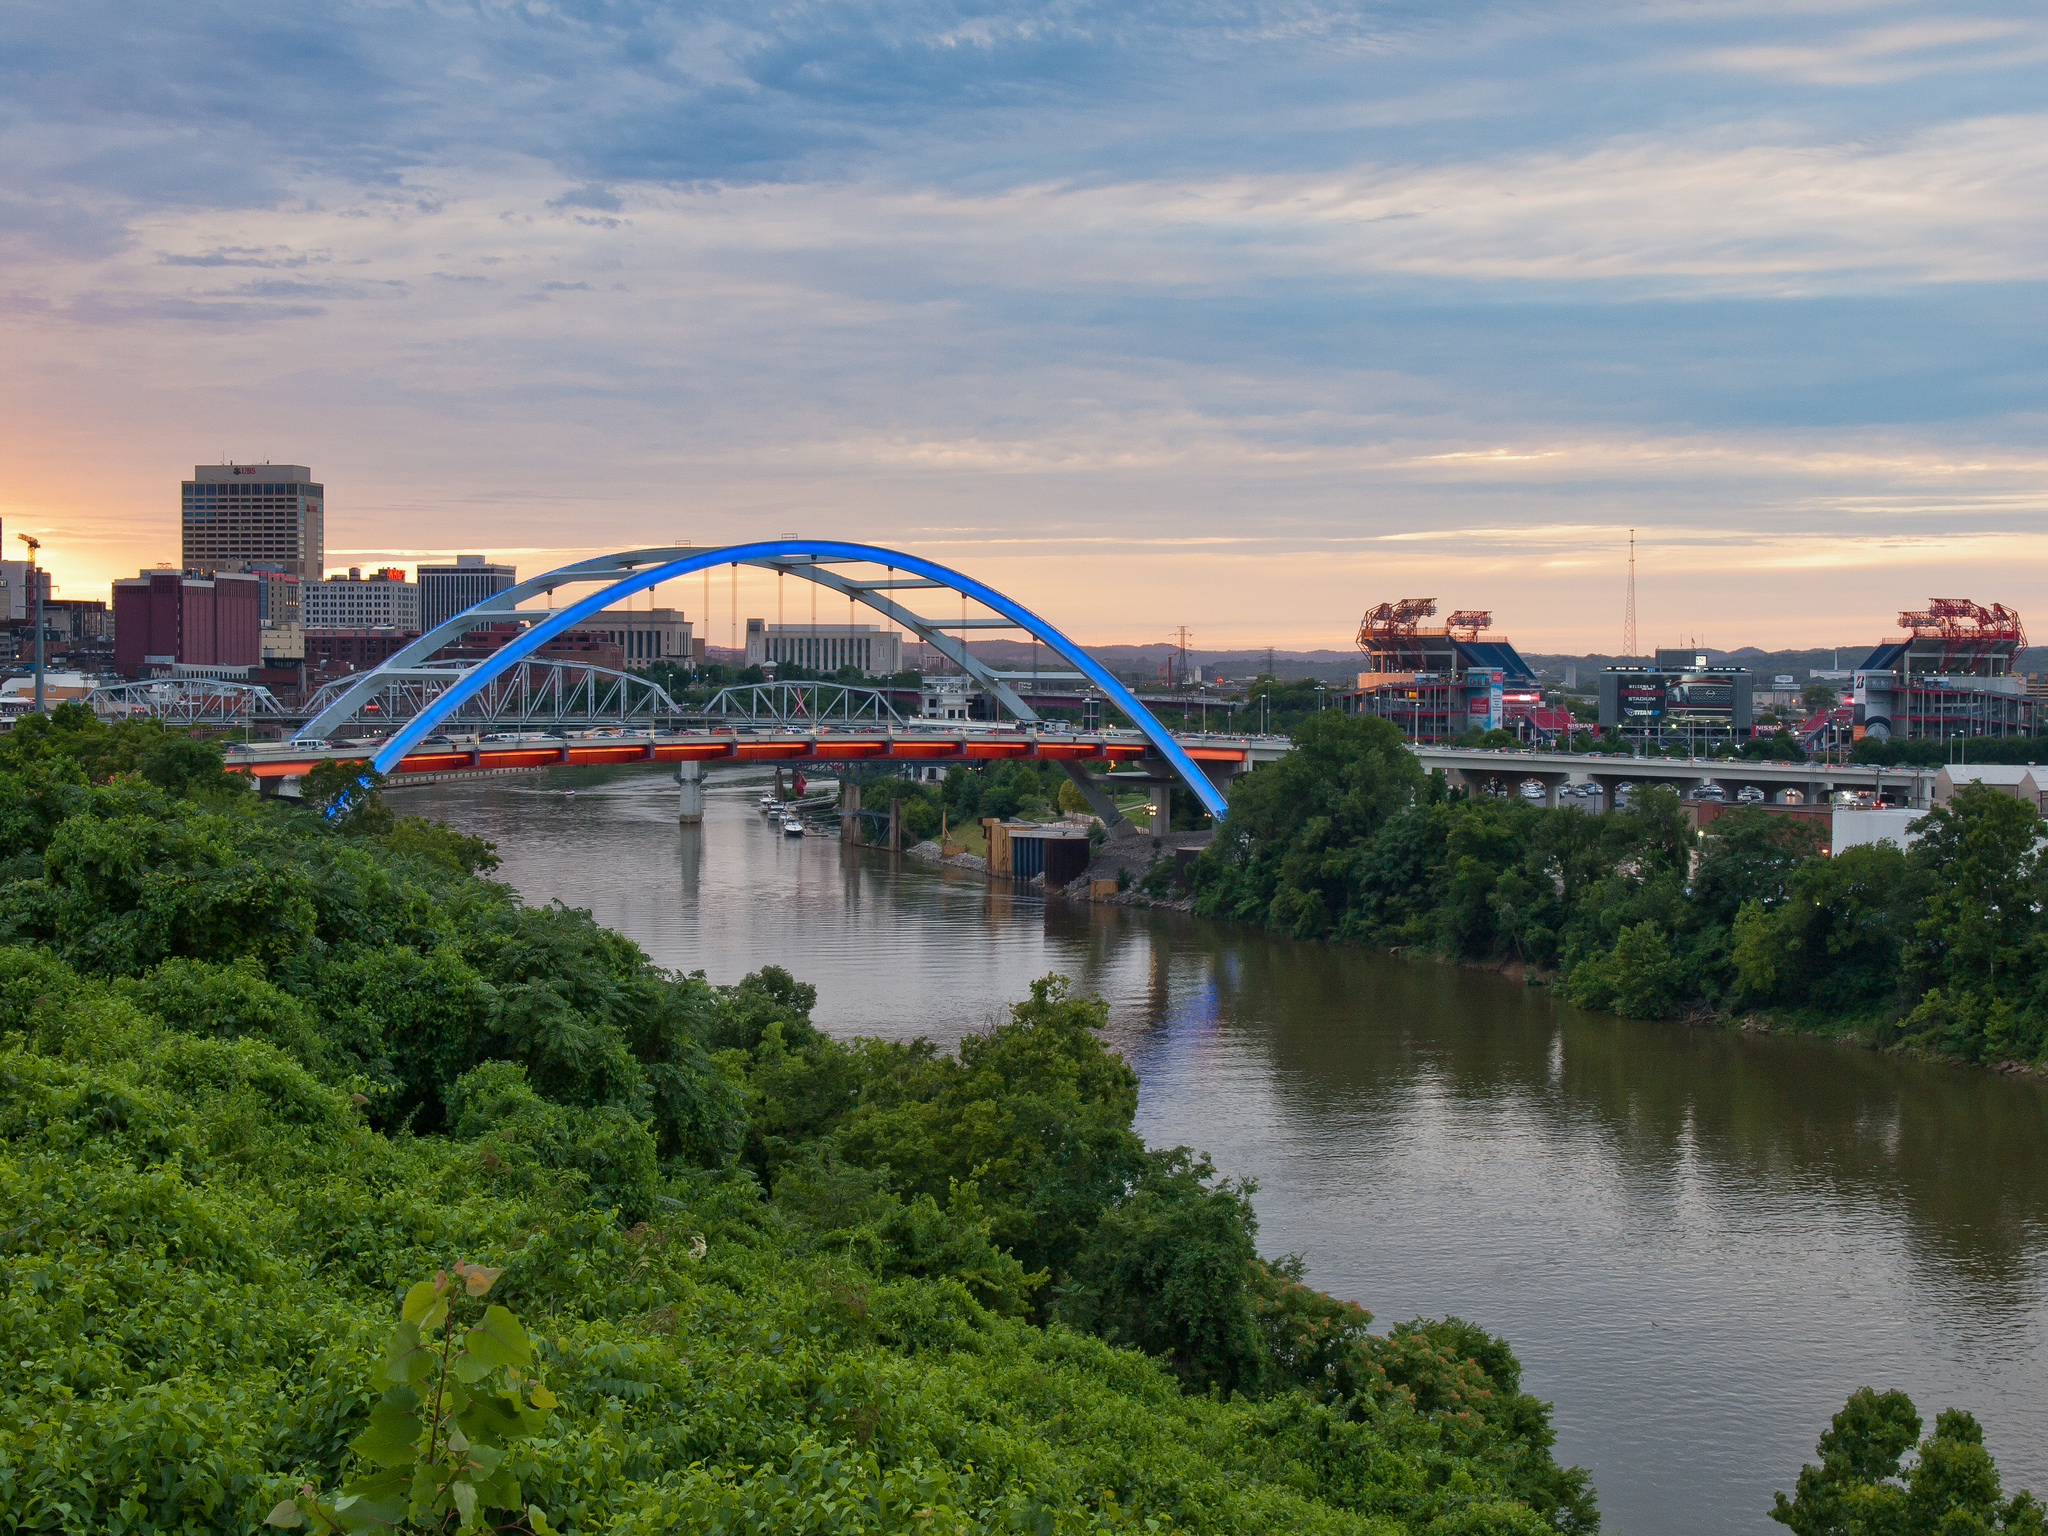 The Korean Veterans Bridge - Downtown Nashville, Tennessee - Olympus E520 / 14-54mm f2.8-3.5